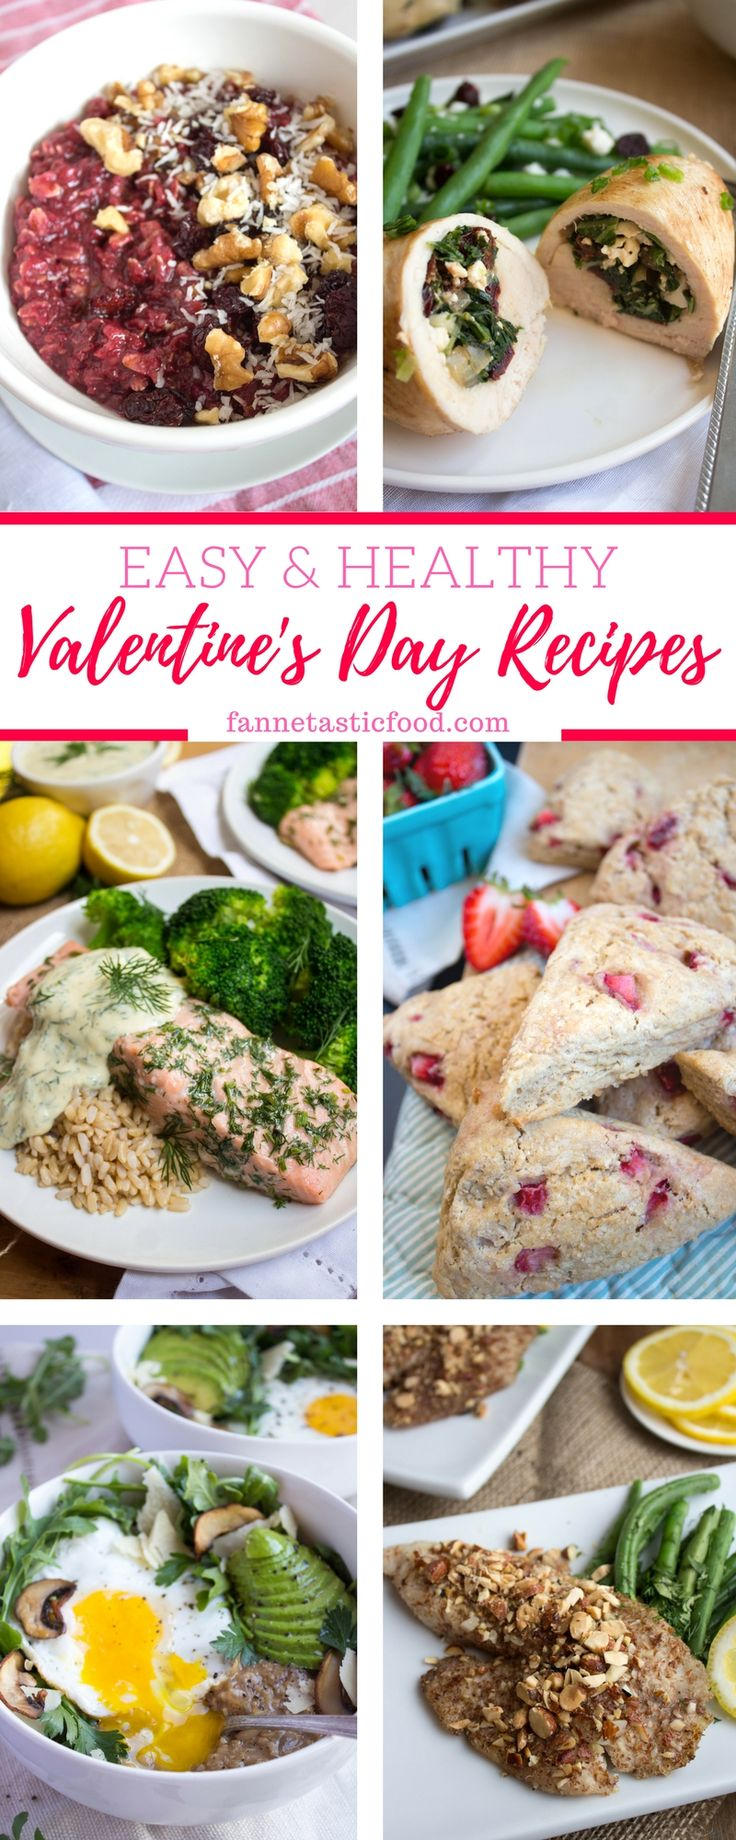 These are my favorite easy, healthy Valentine's Day Recipes! They are perfect for showing someone you love them - and care about their health!